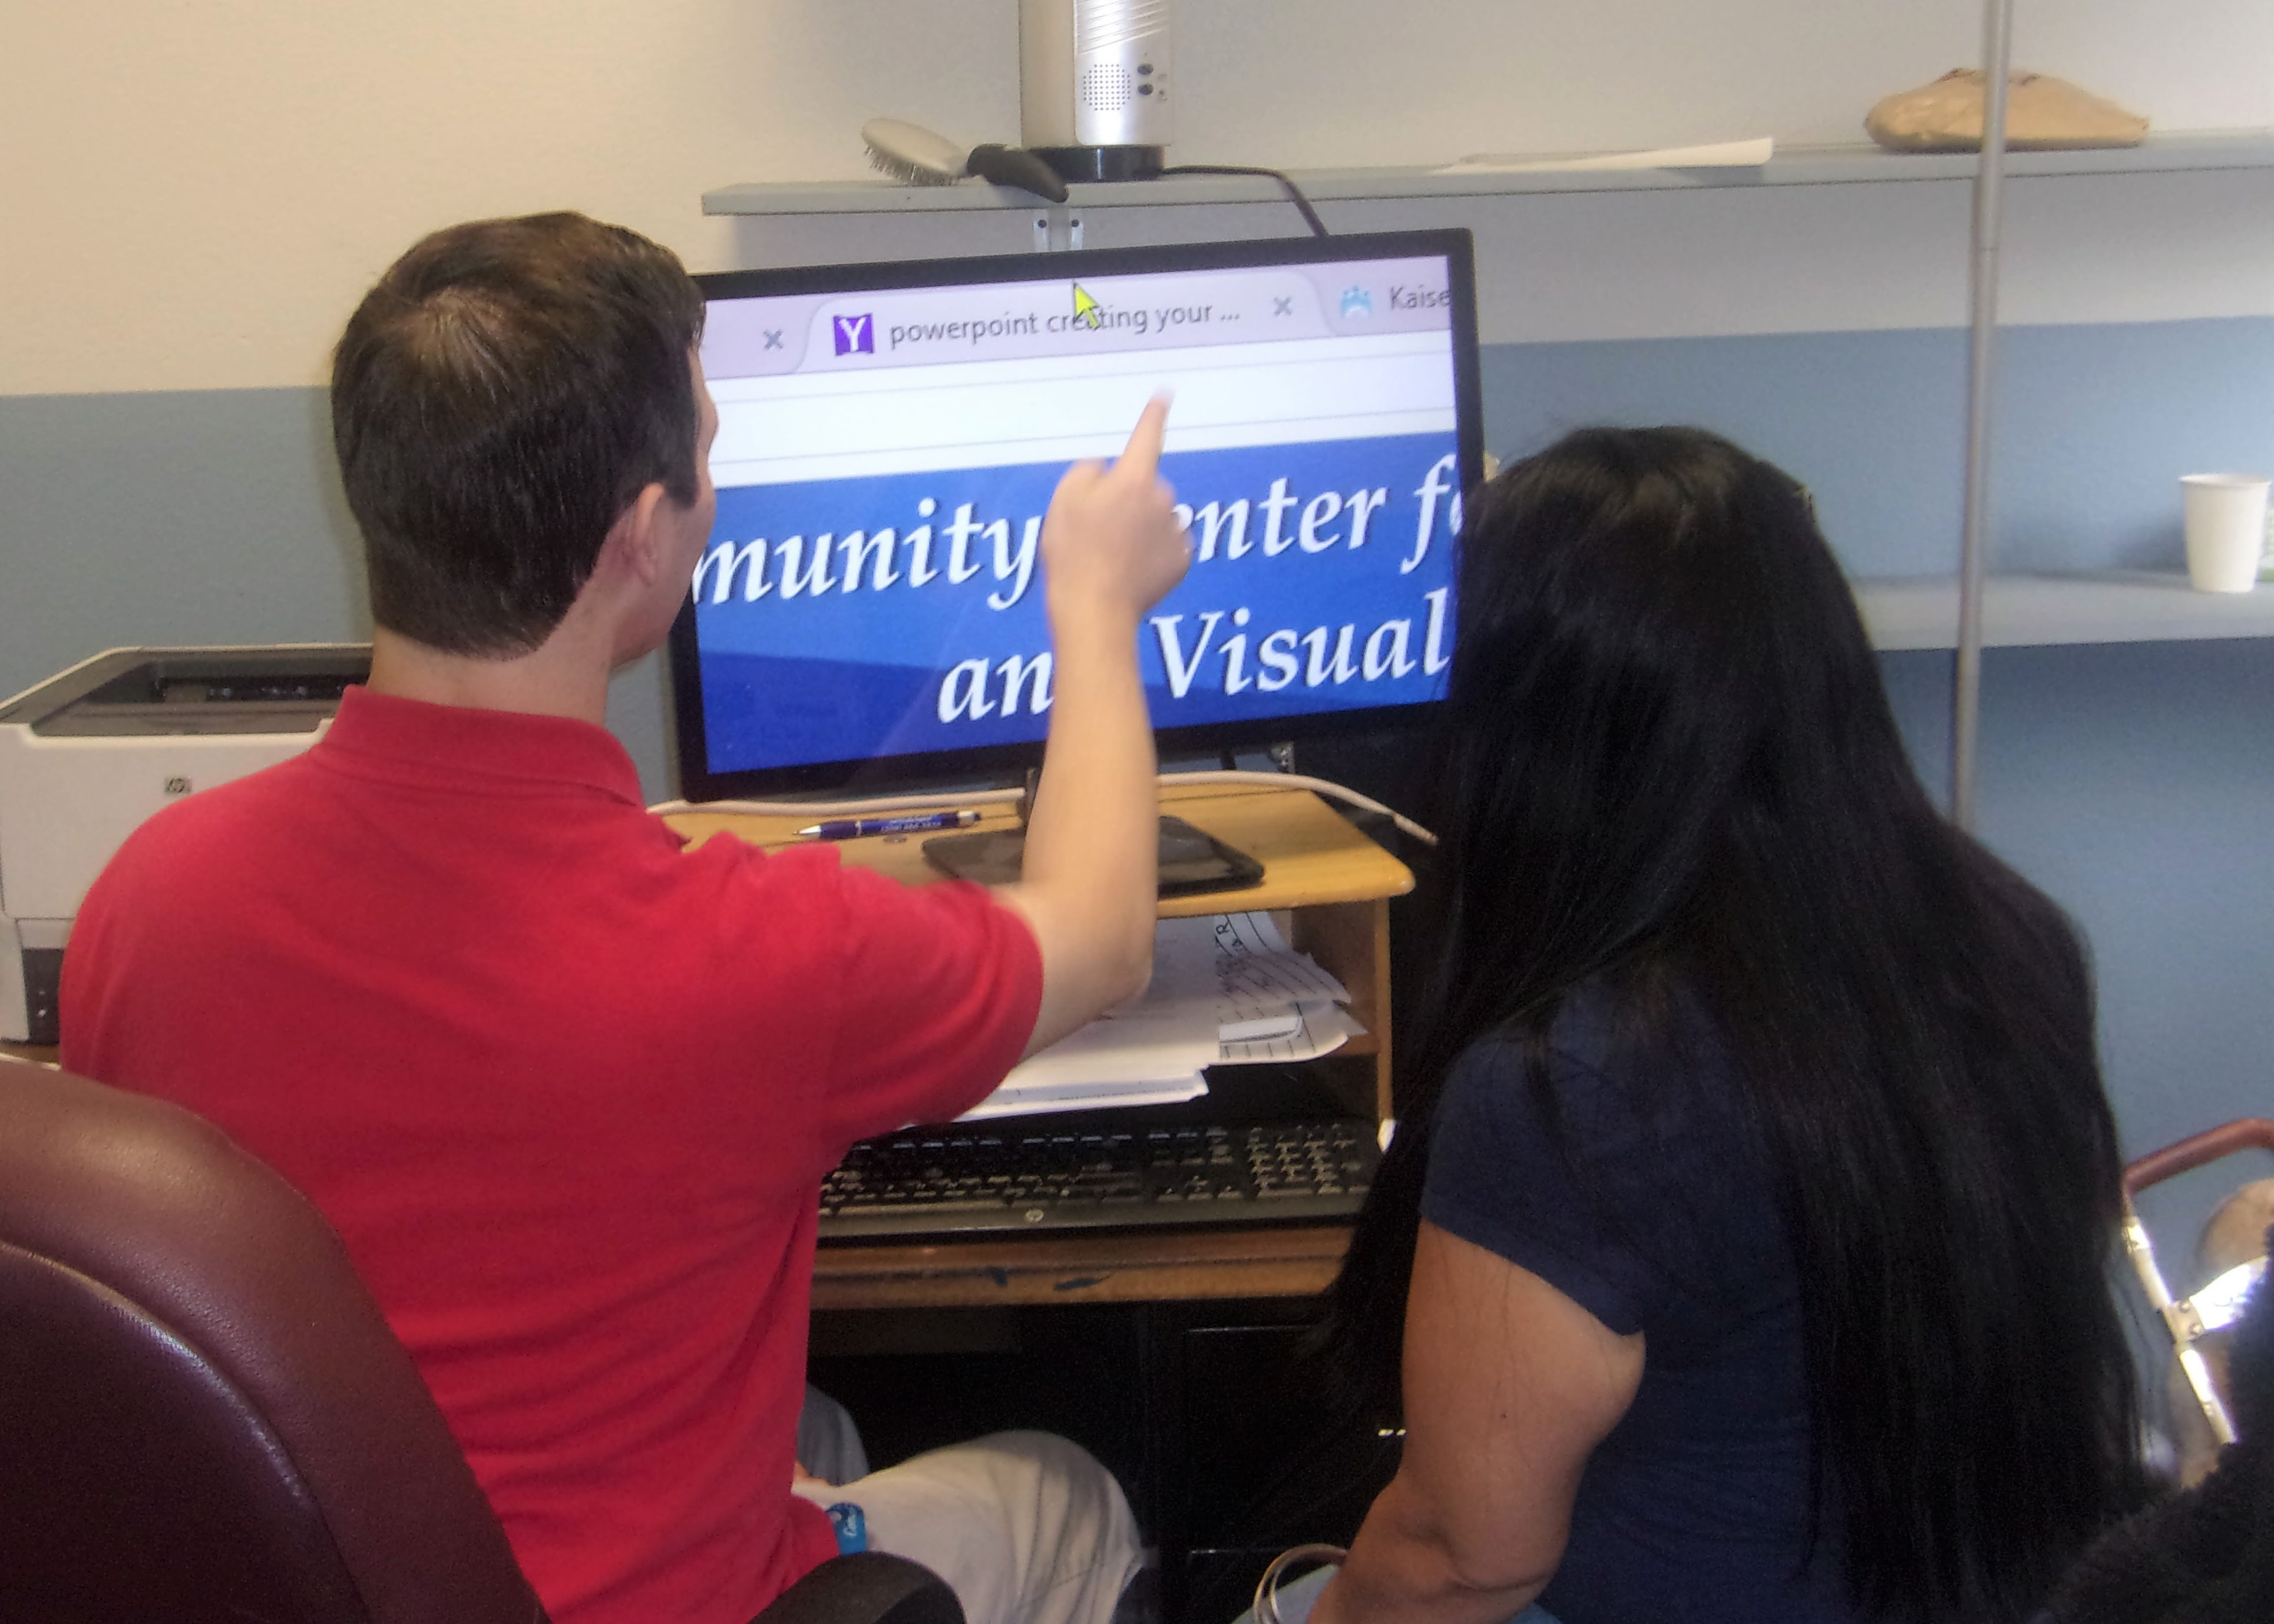 Assistive technology instructor demonstrates a computer using screen magnification software.